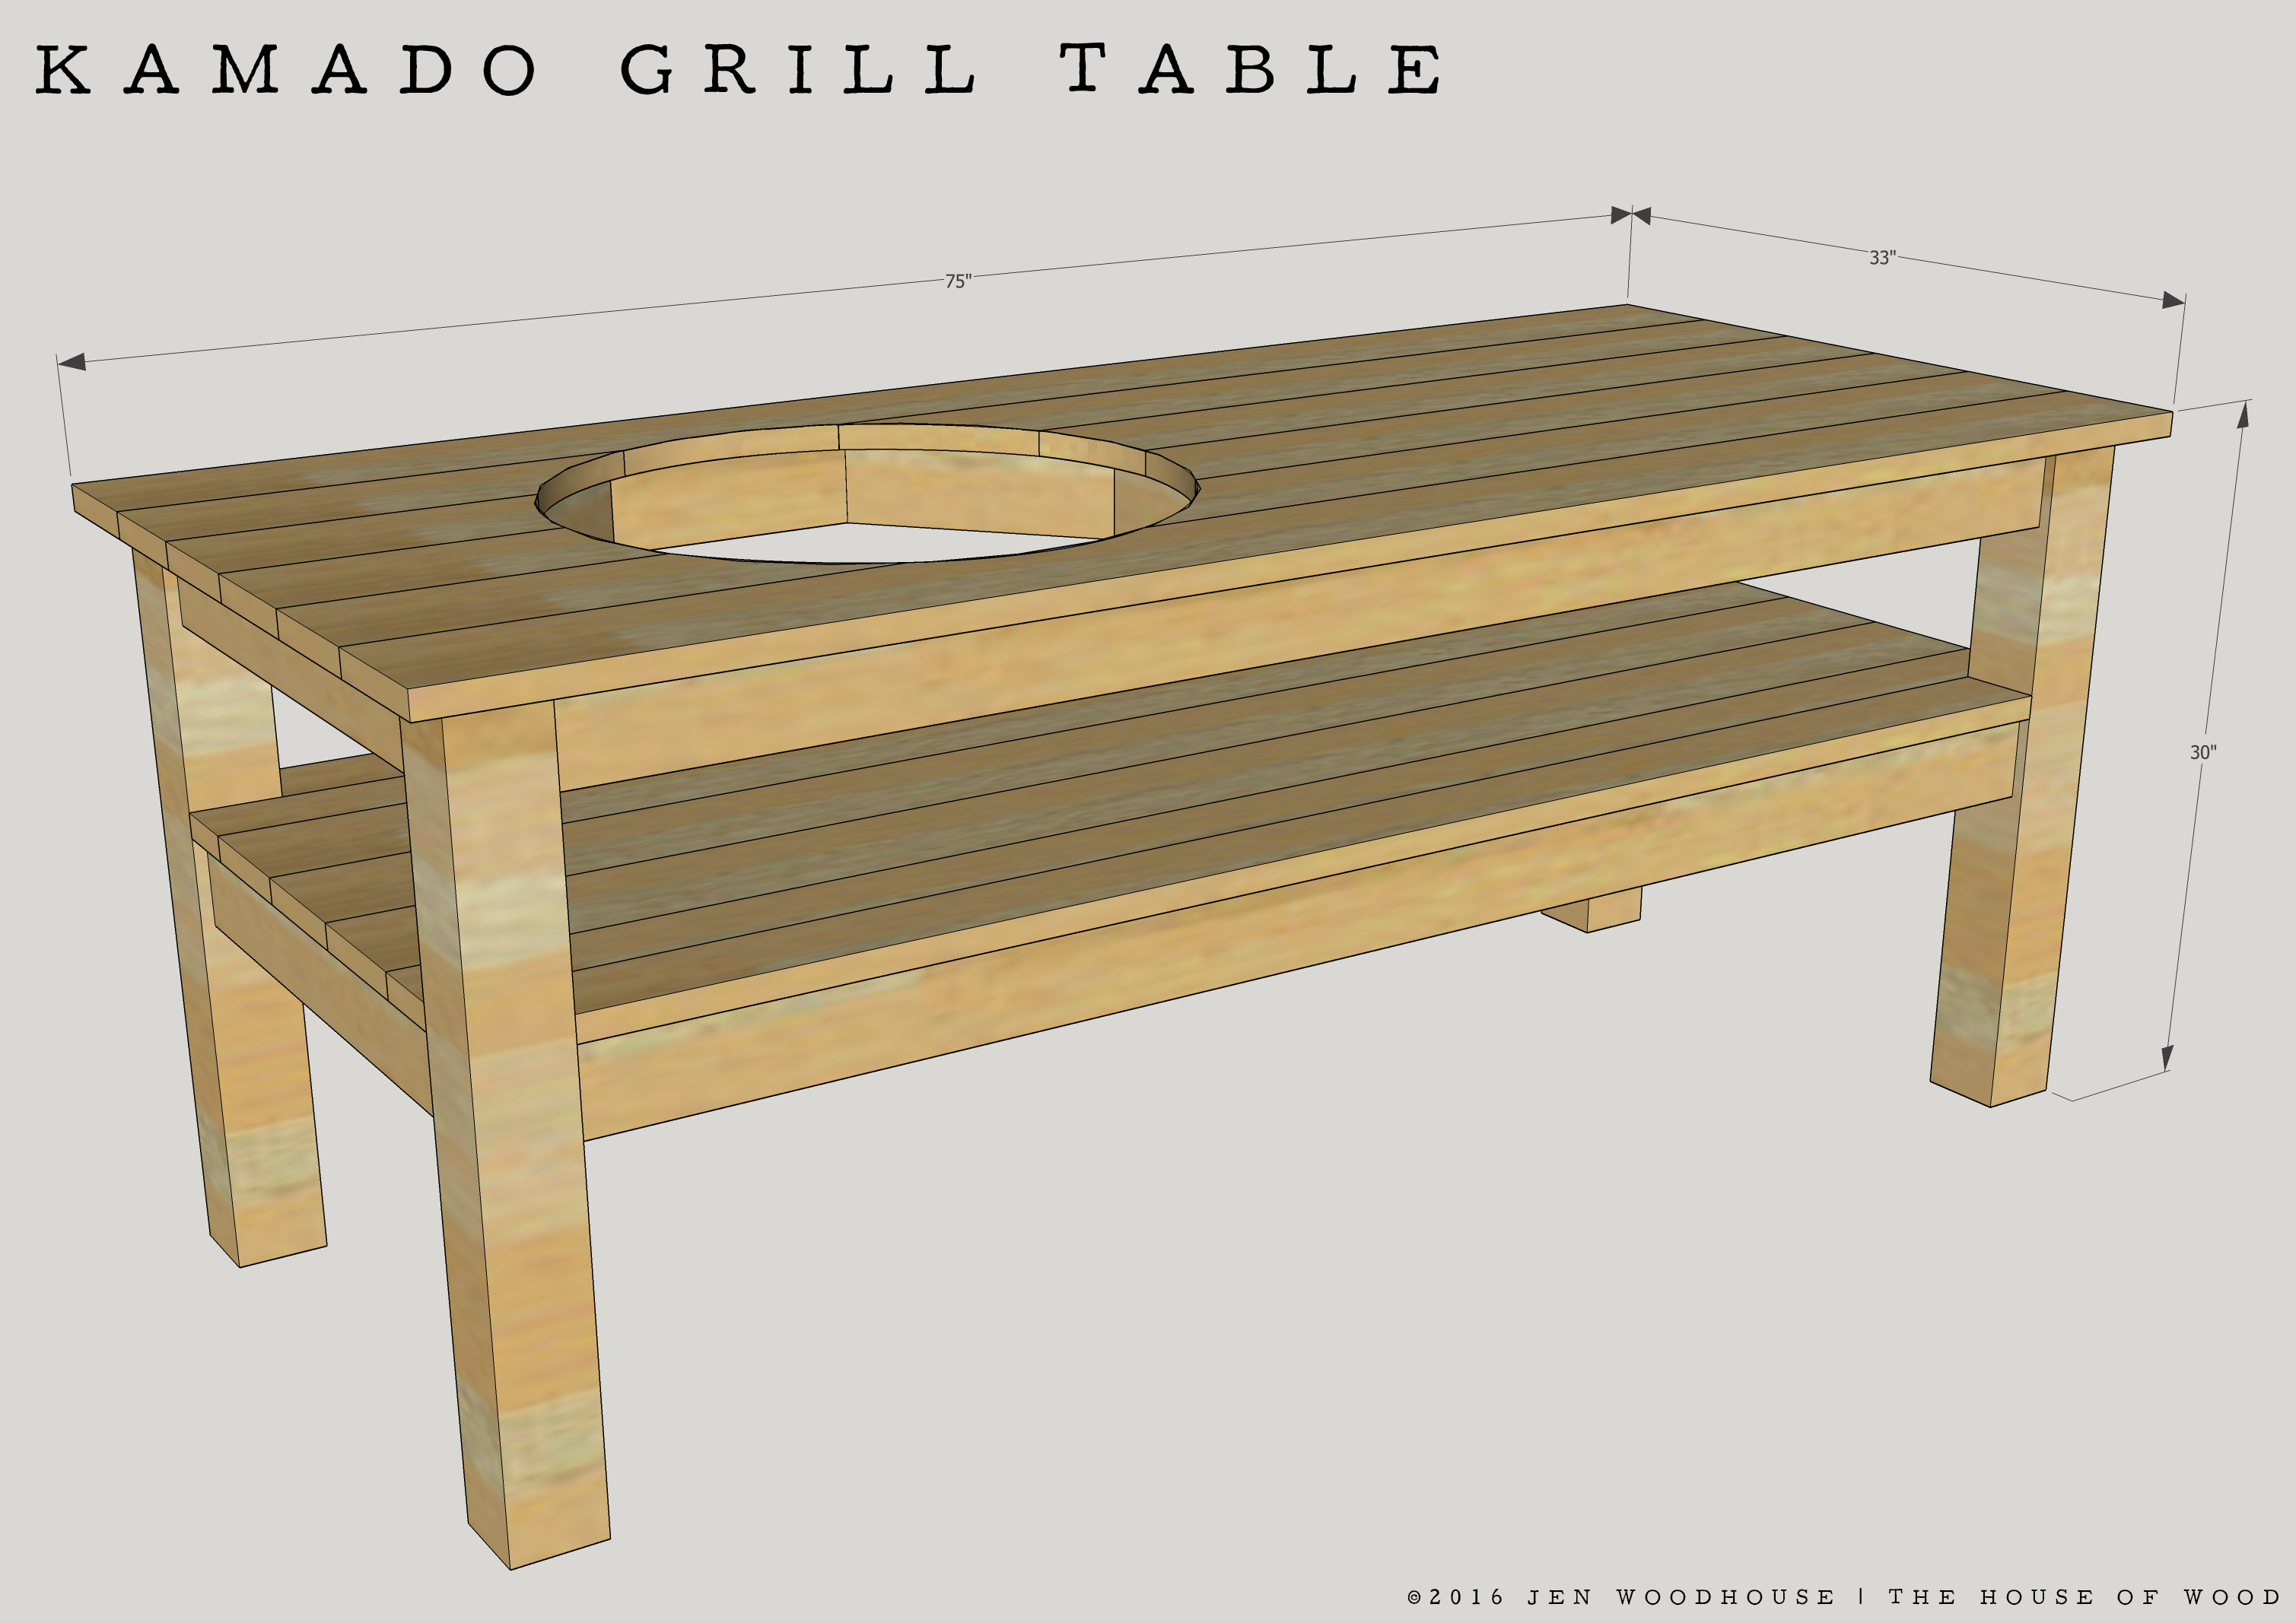 diy kamado grill table sst side outdoor wanted make this design simple possible there are lot tables floating around the interwebs that have all rectangular marble dining sheesham